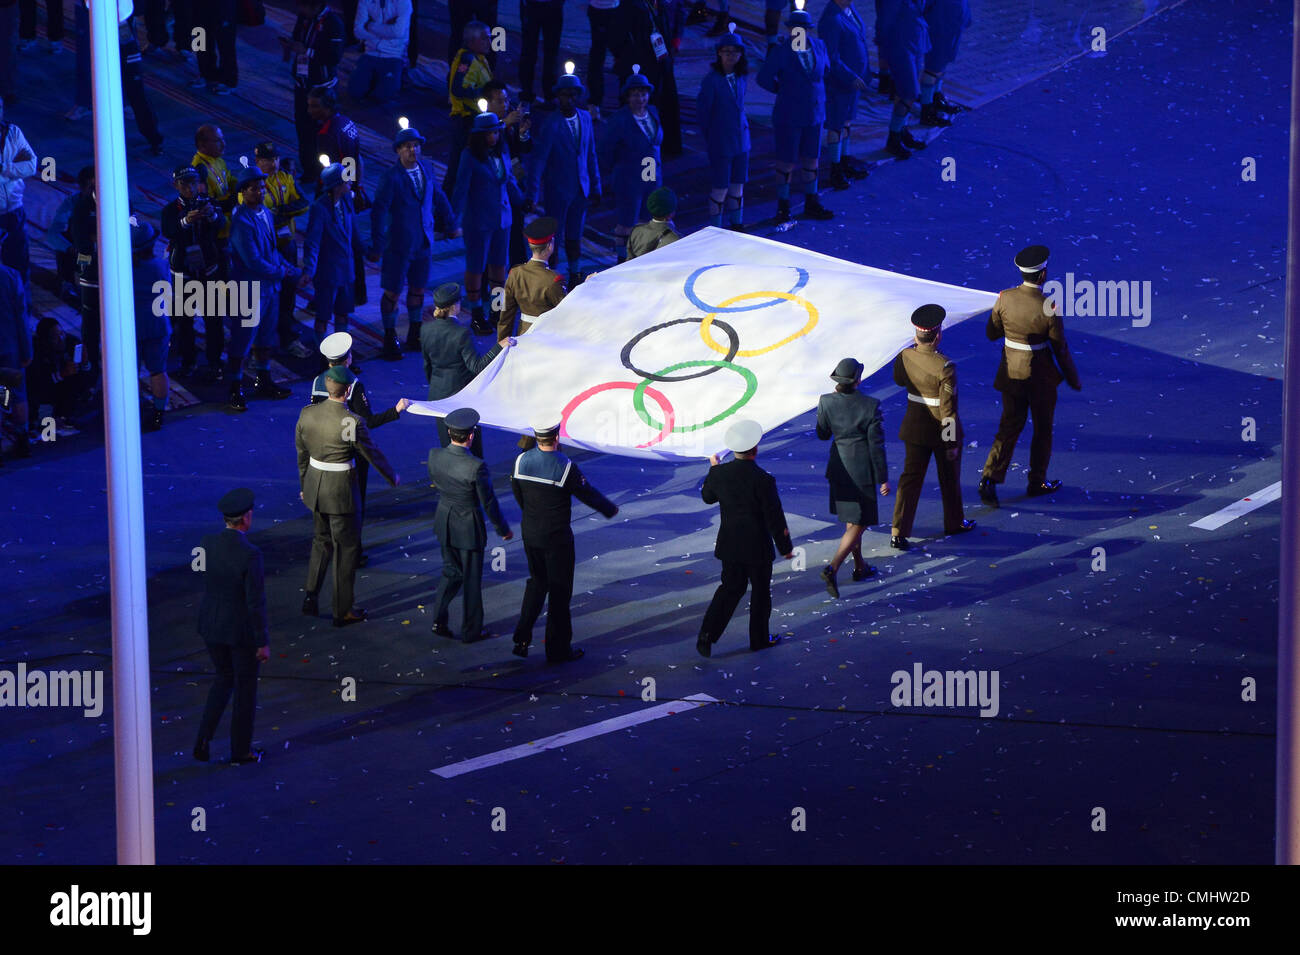 The closing ceremony of the London 2012 Olympic Games on 12 August 2012 - Stock Image